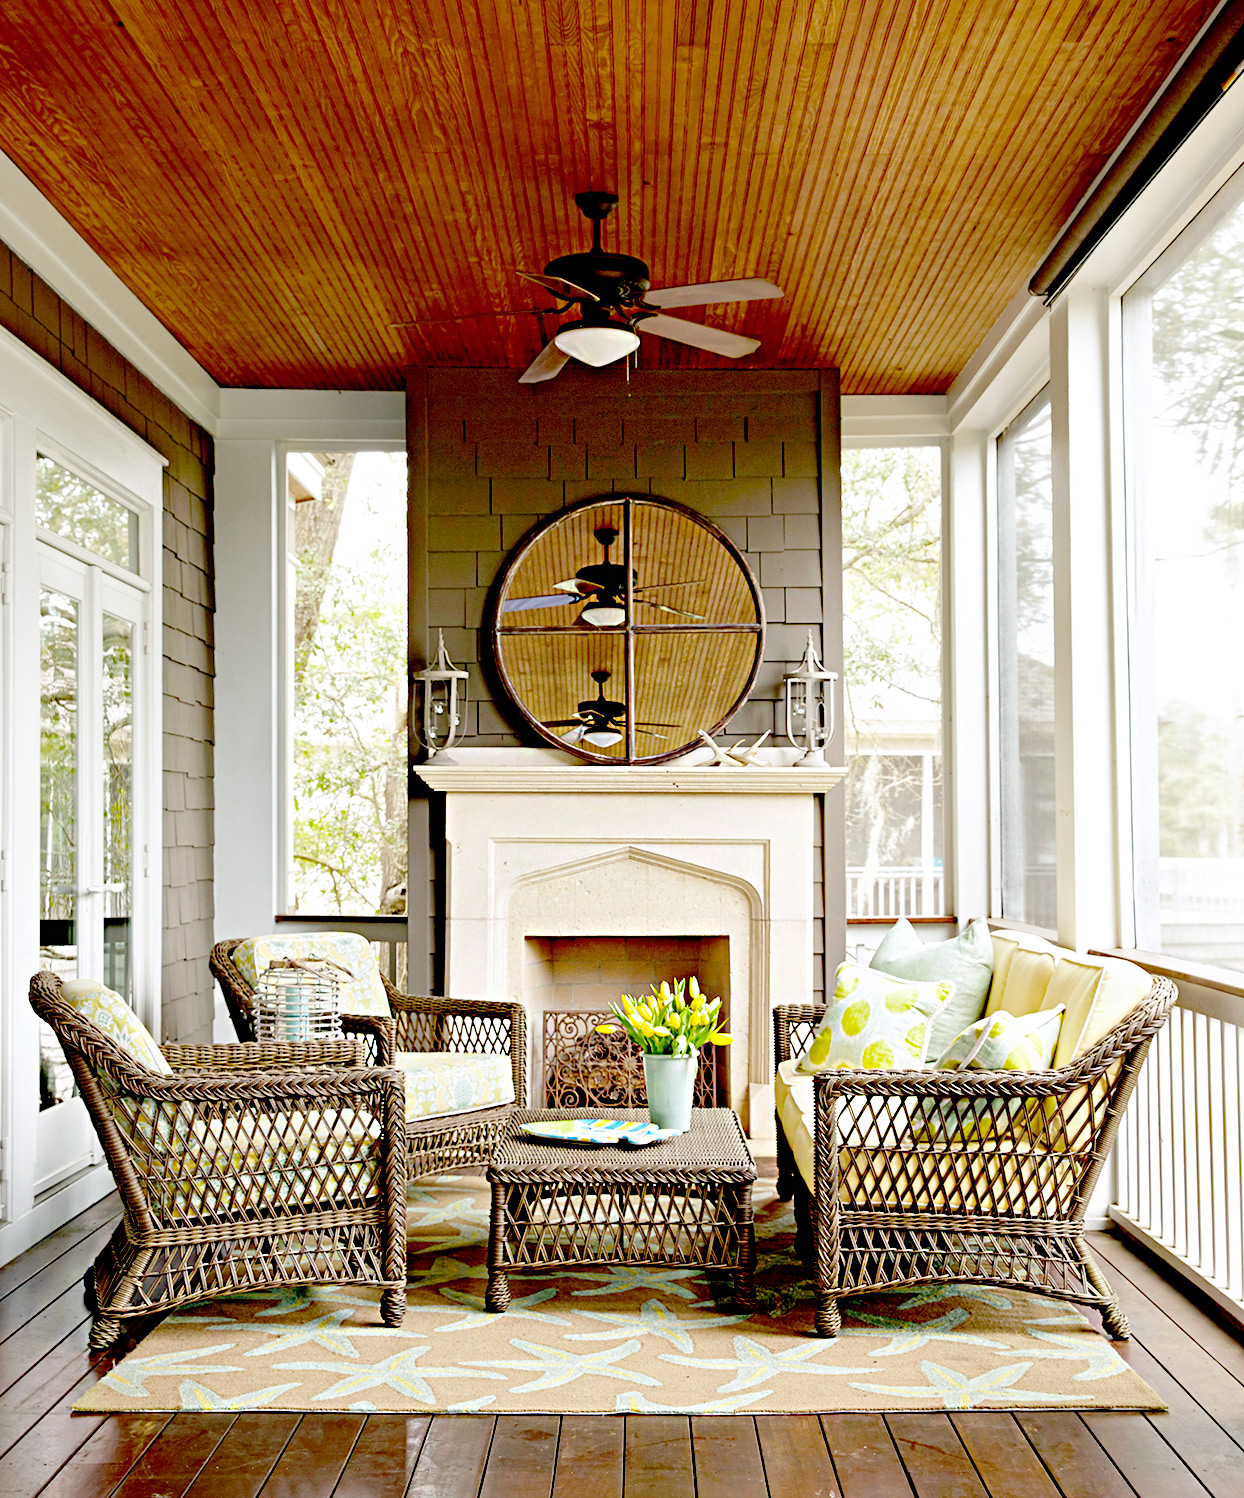 Porch with fireplace and wicker seating